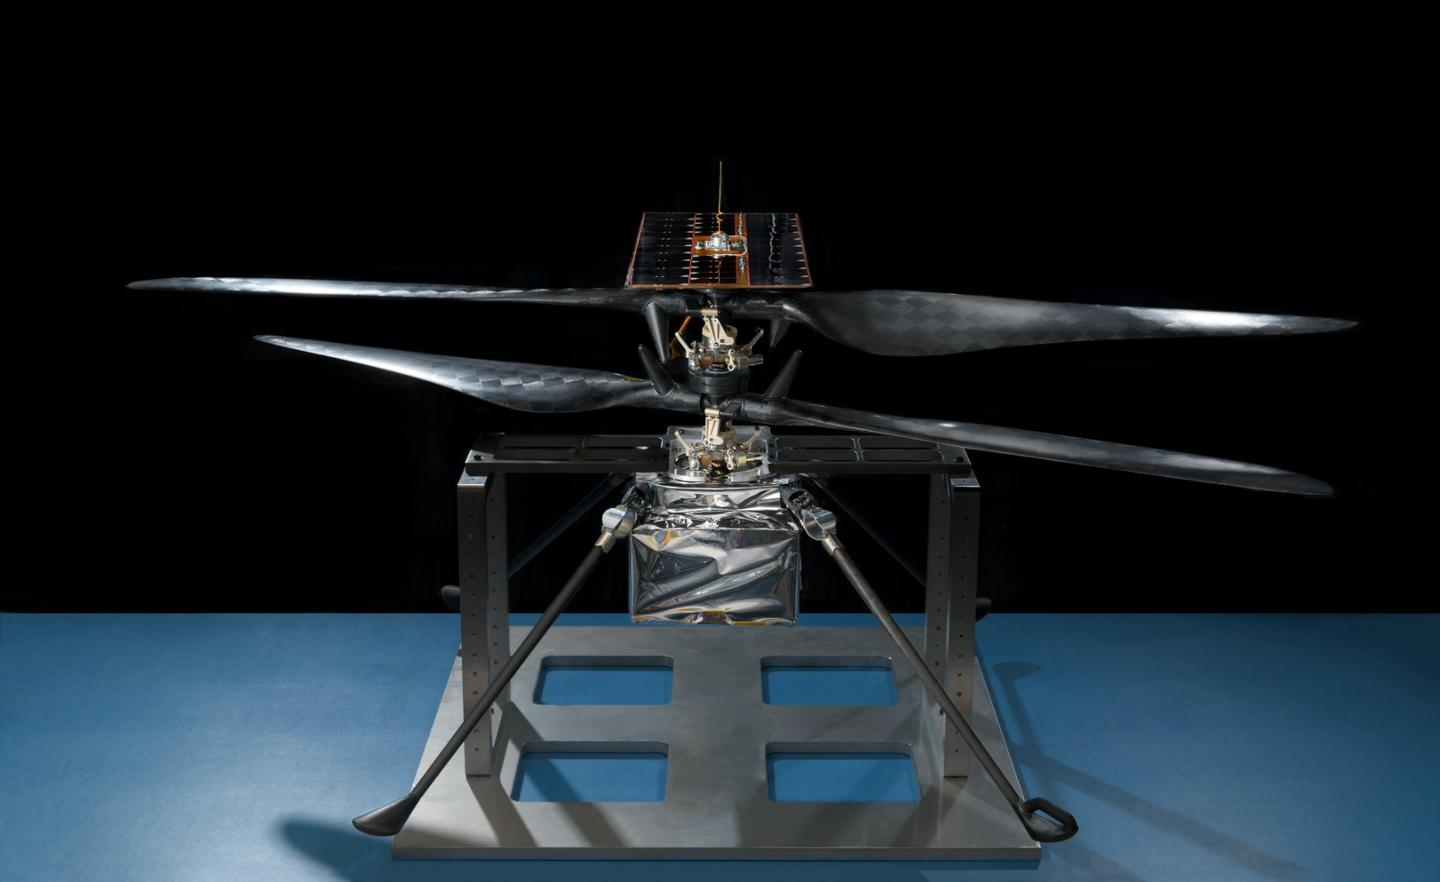 The Marscopter will be used to explore the Red Planet during the Mars 2020 rover mission